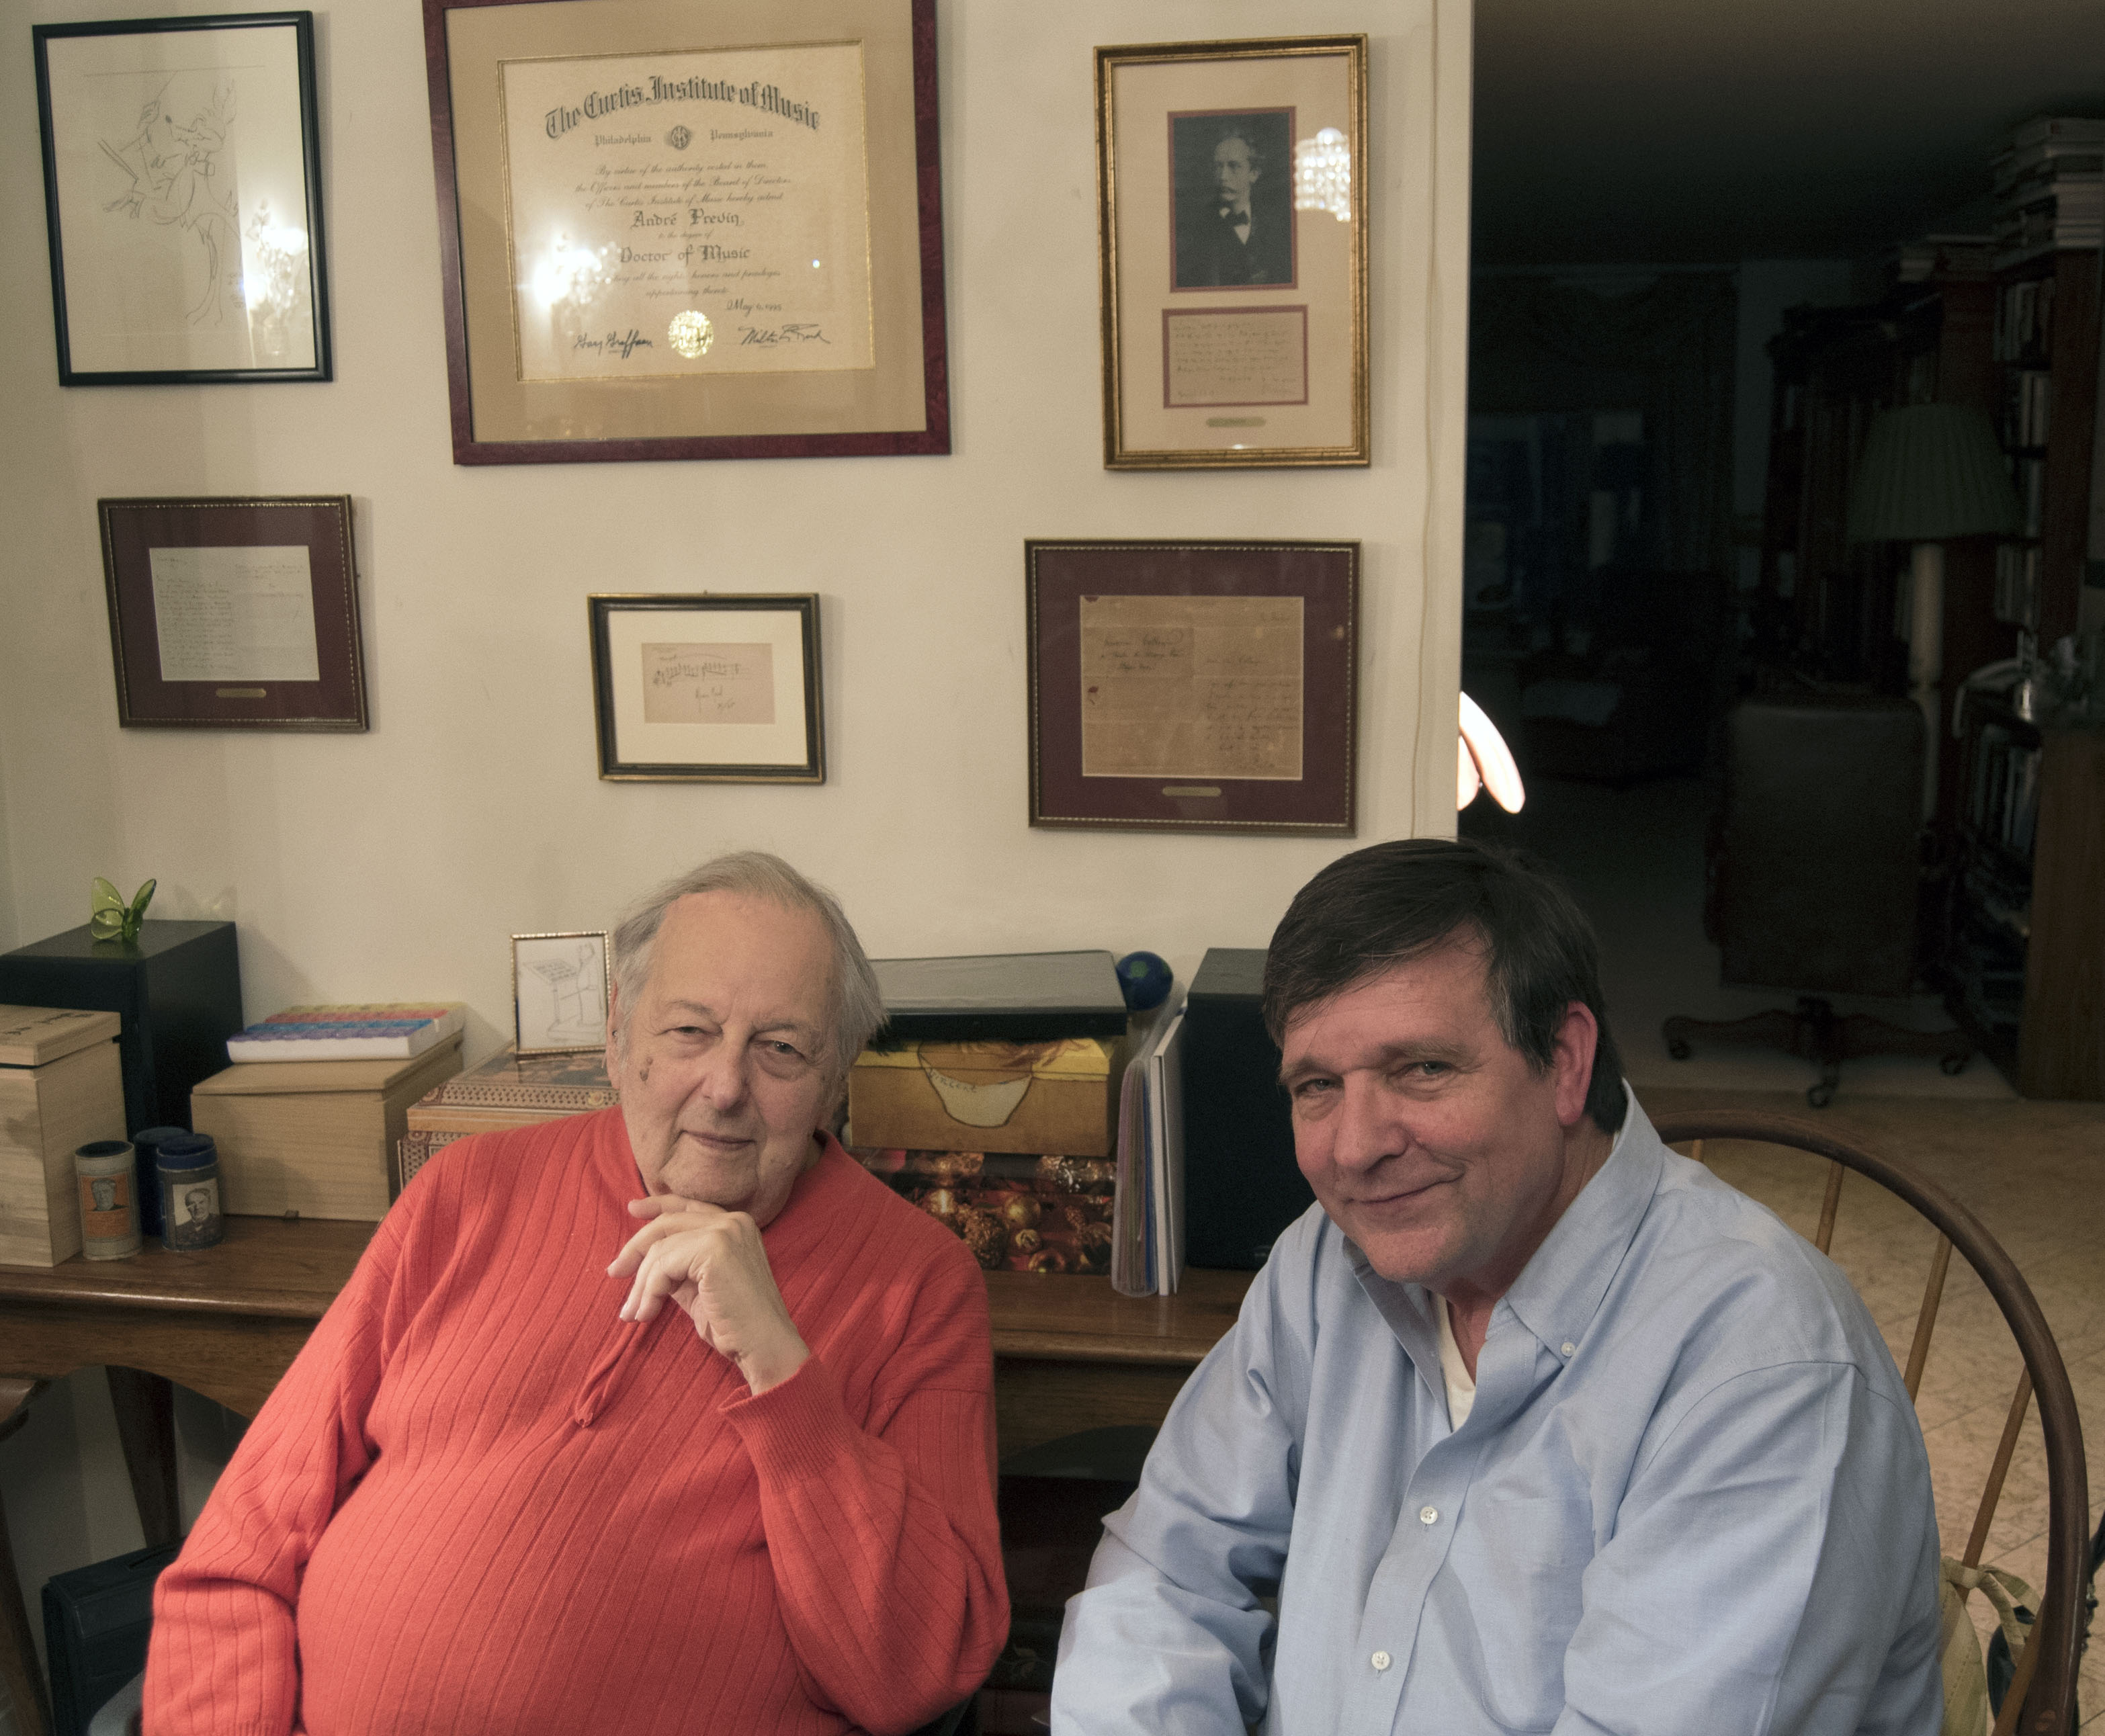 André Previn and David Fetherolf in Previn's home (photo by Andrew Stein-Zeller)